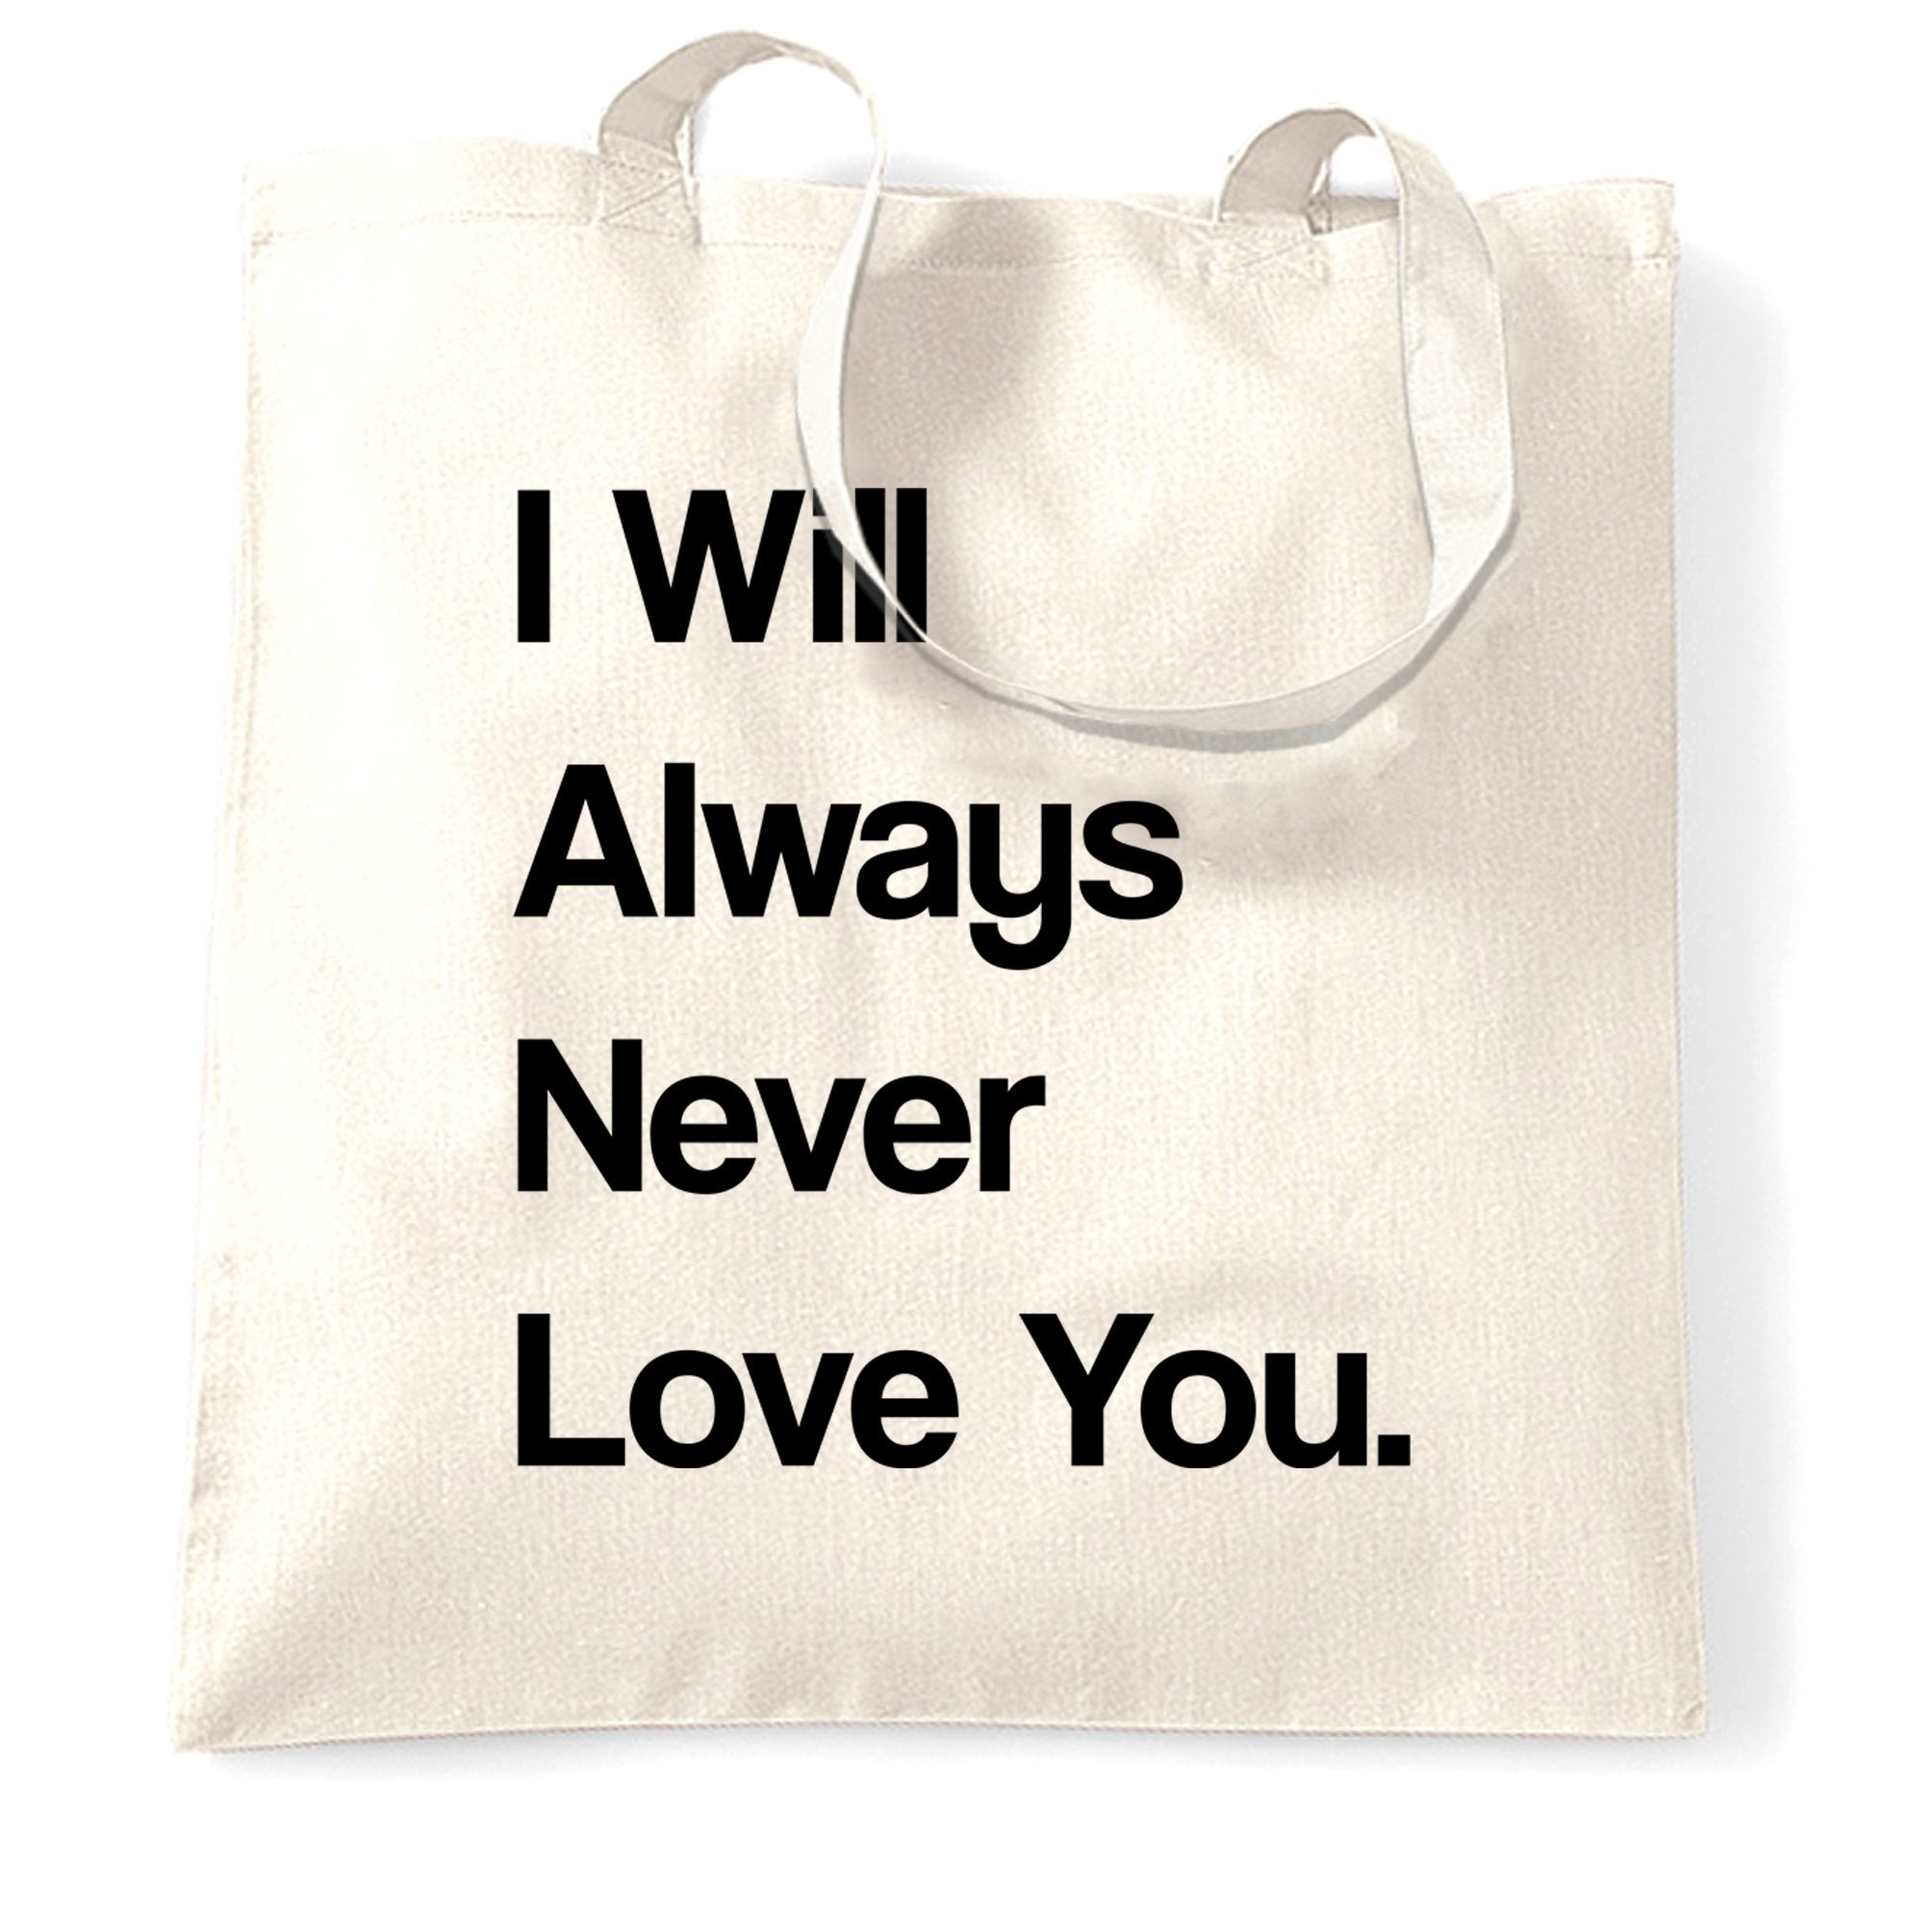 Novelty Tote Bag I Will Always Never Love You